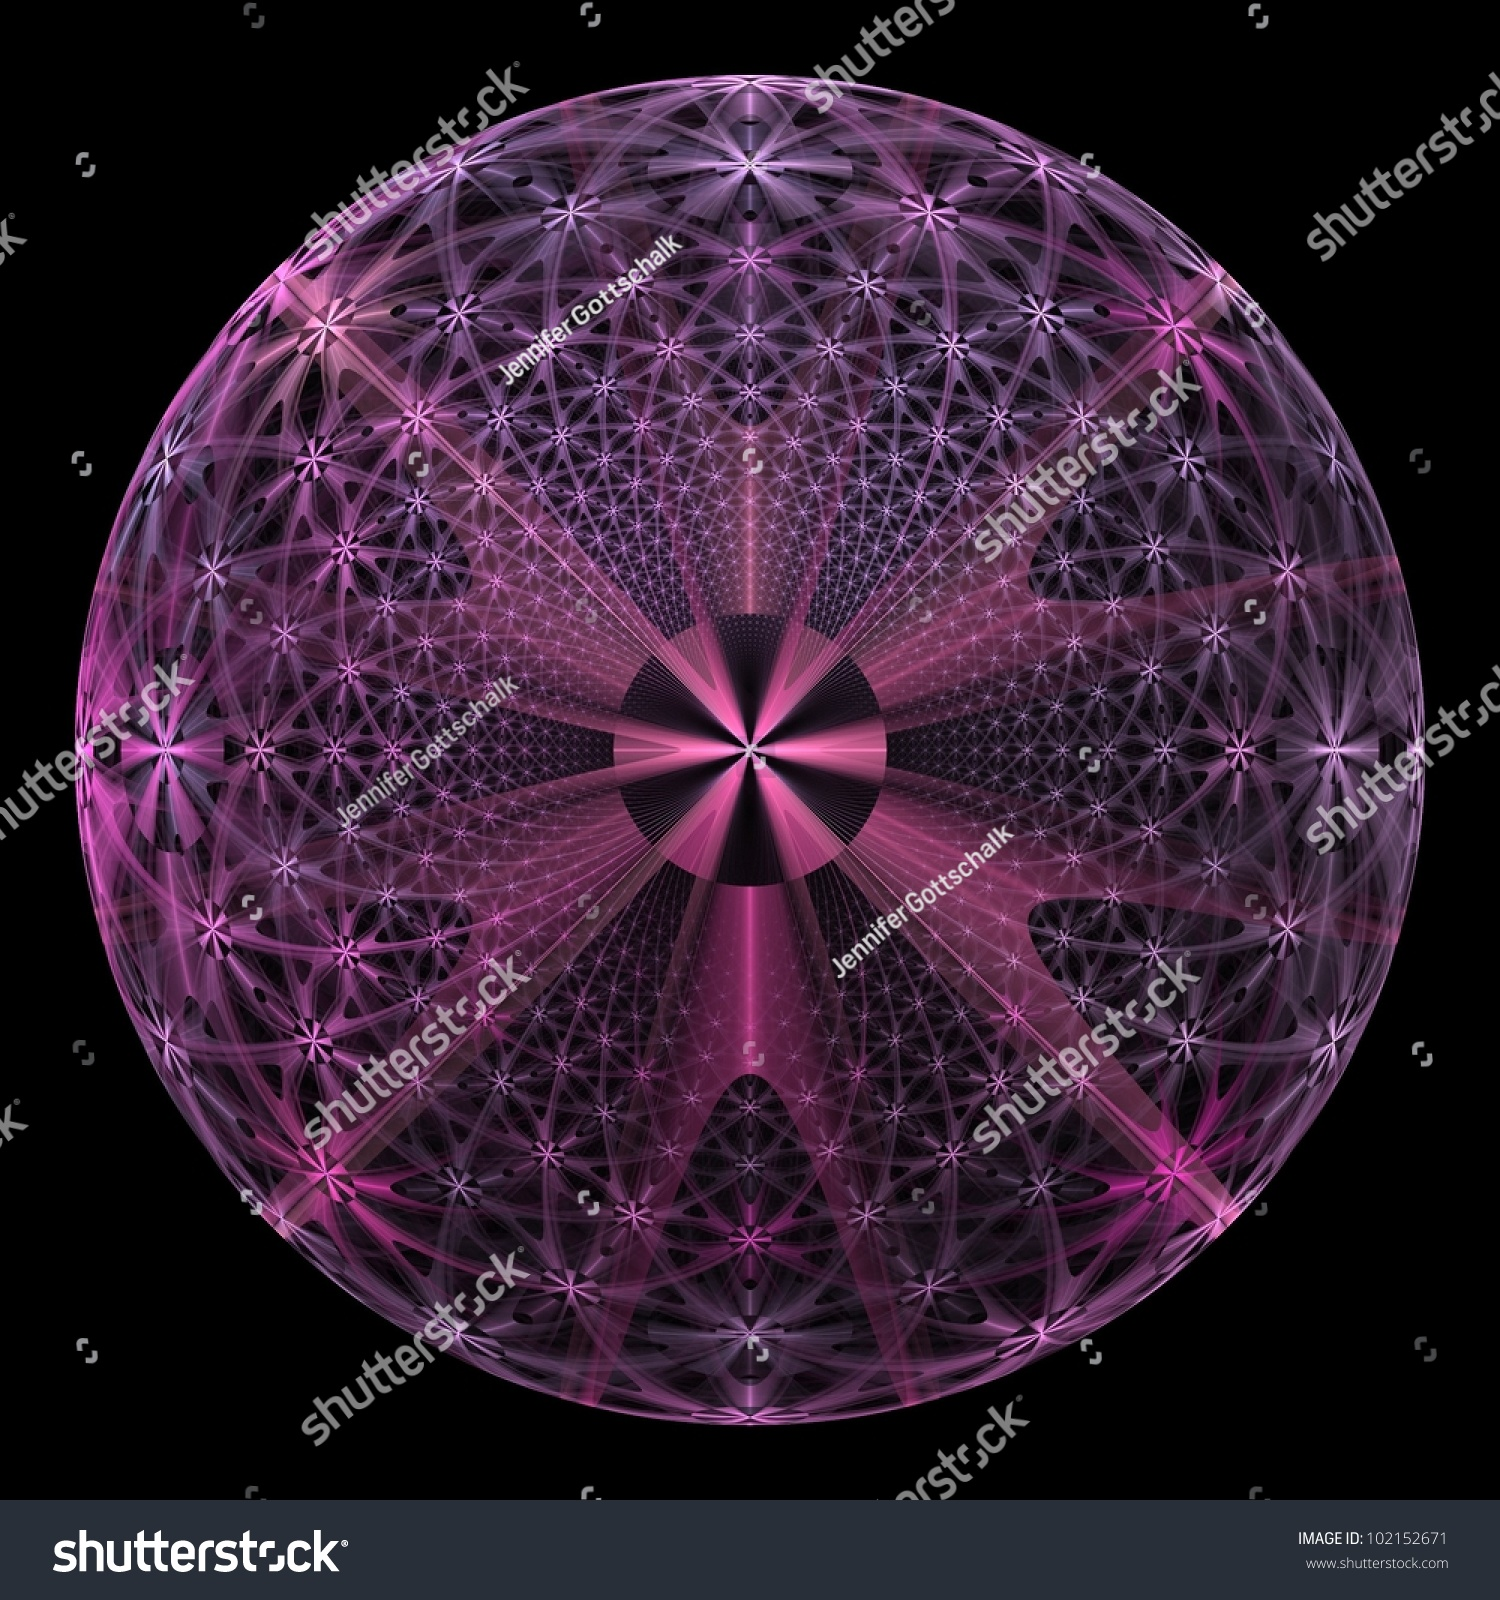 Funky Pink And Purple Star Flower Disk On Black Background Ez Canvas